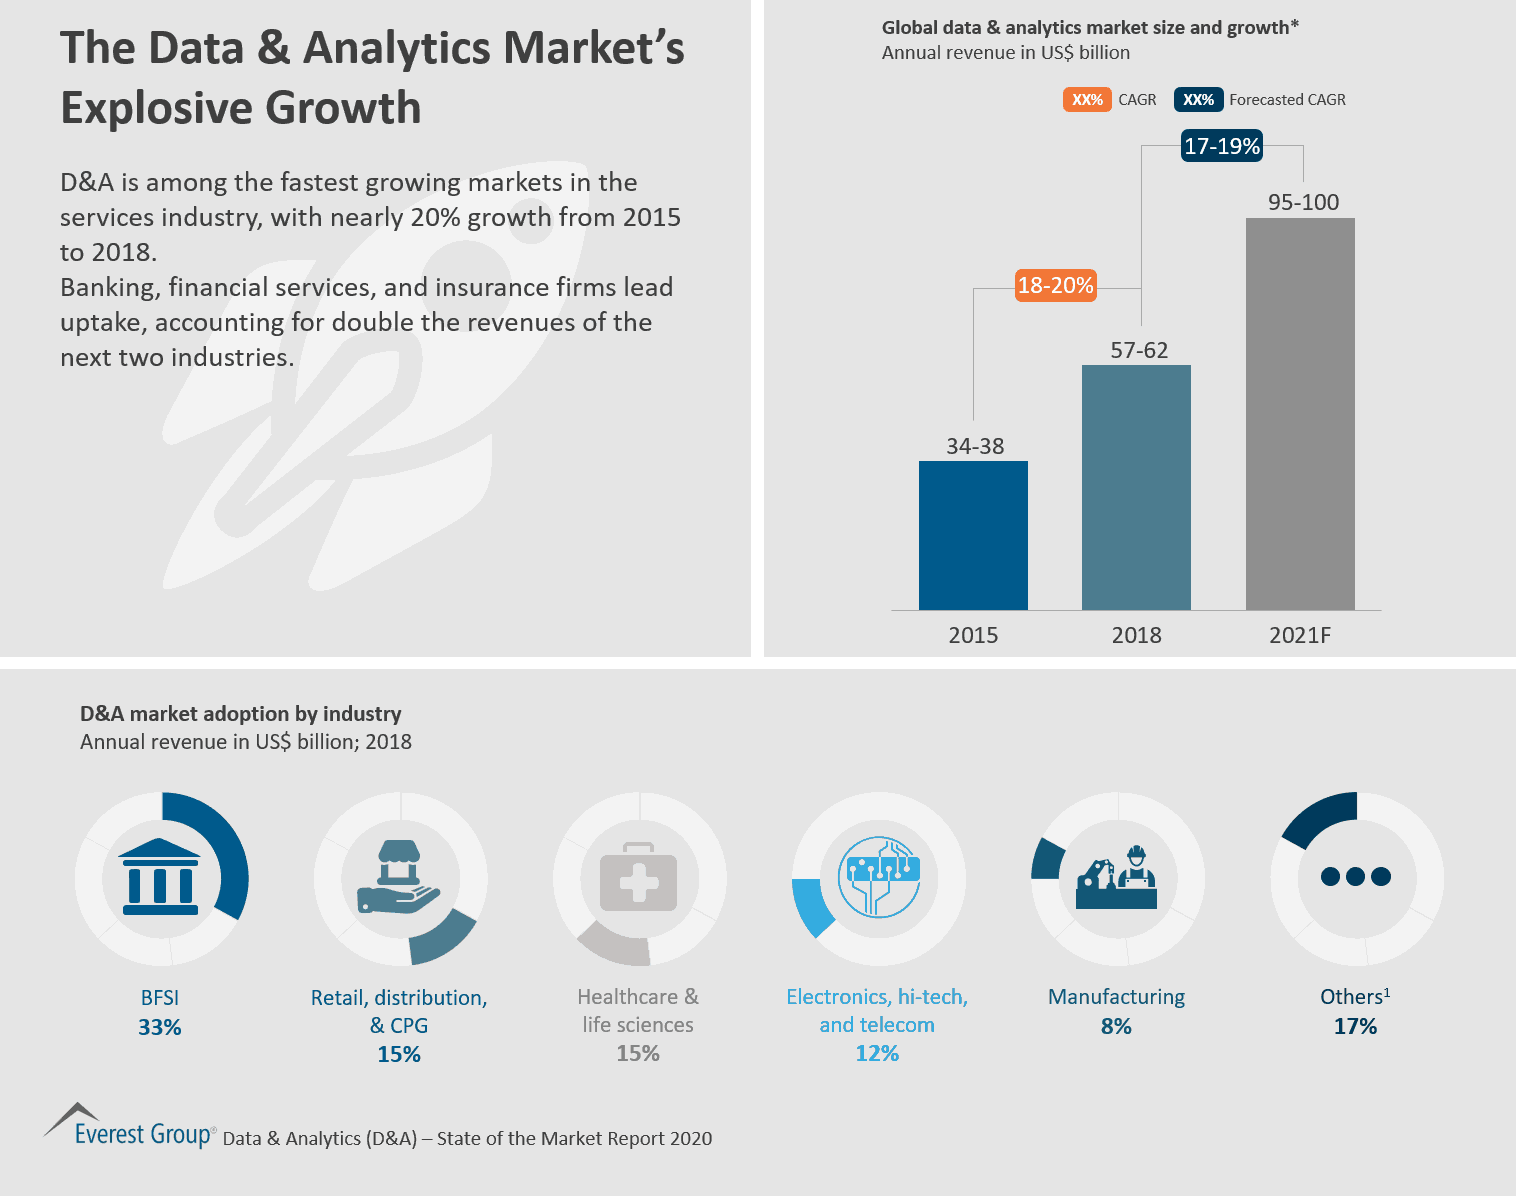 The Data & Analytics Market's Explosive Growth